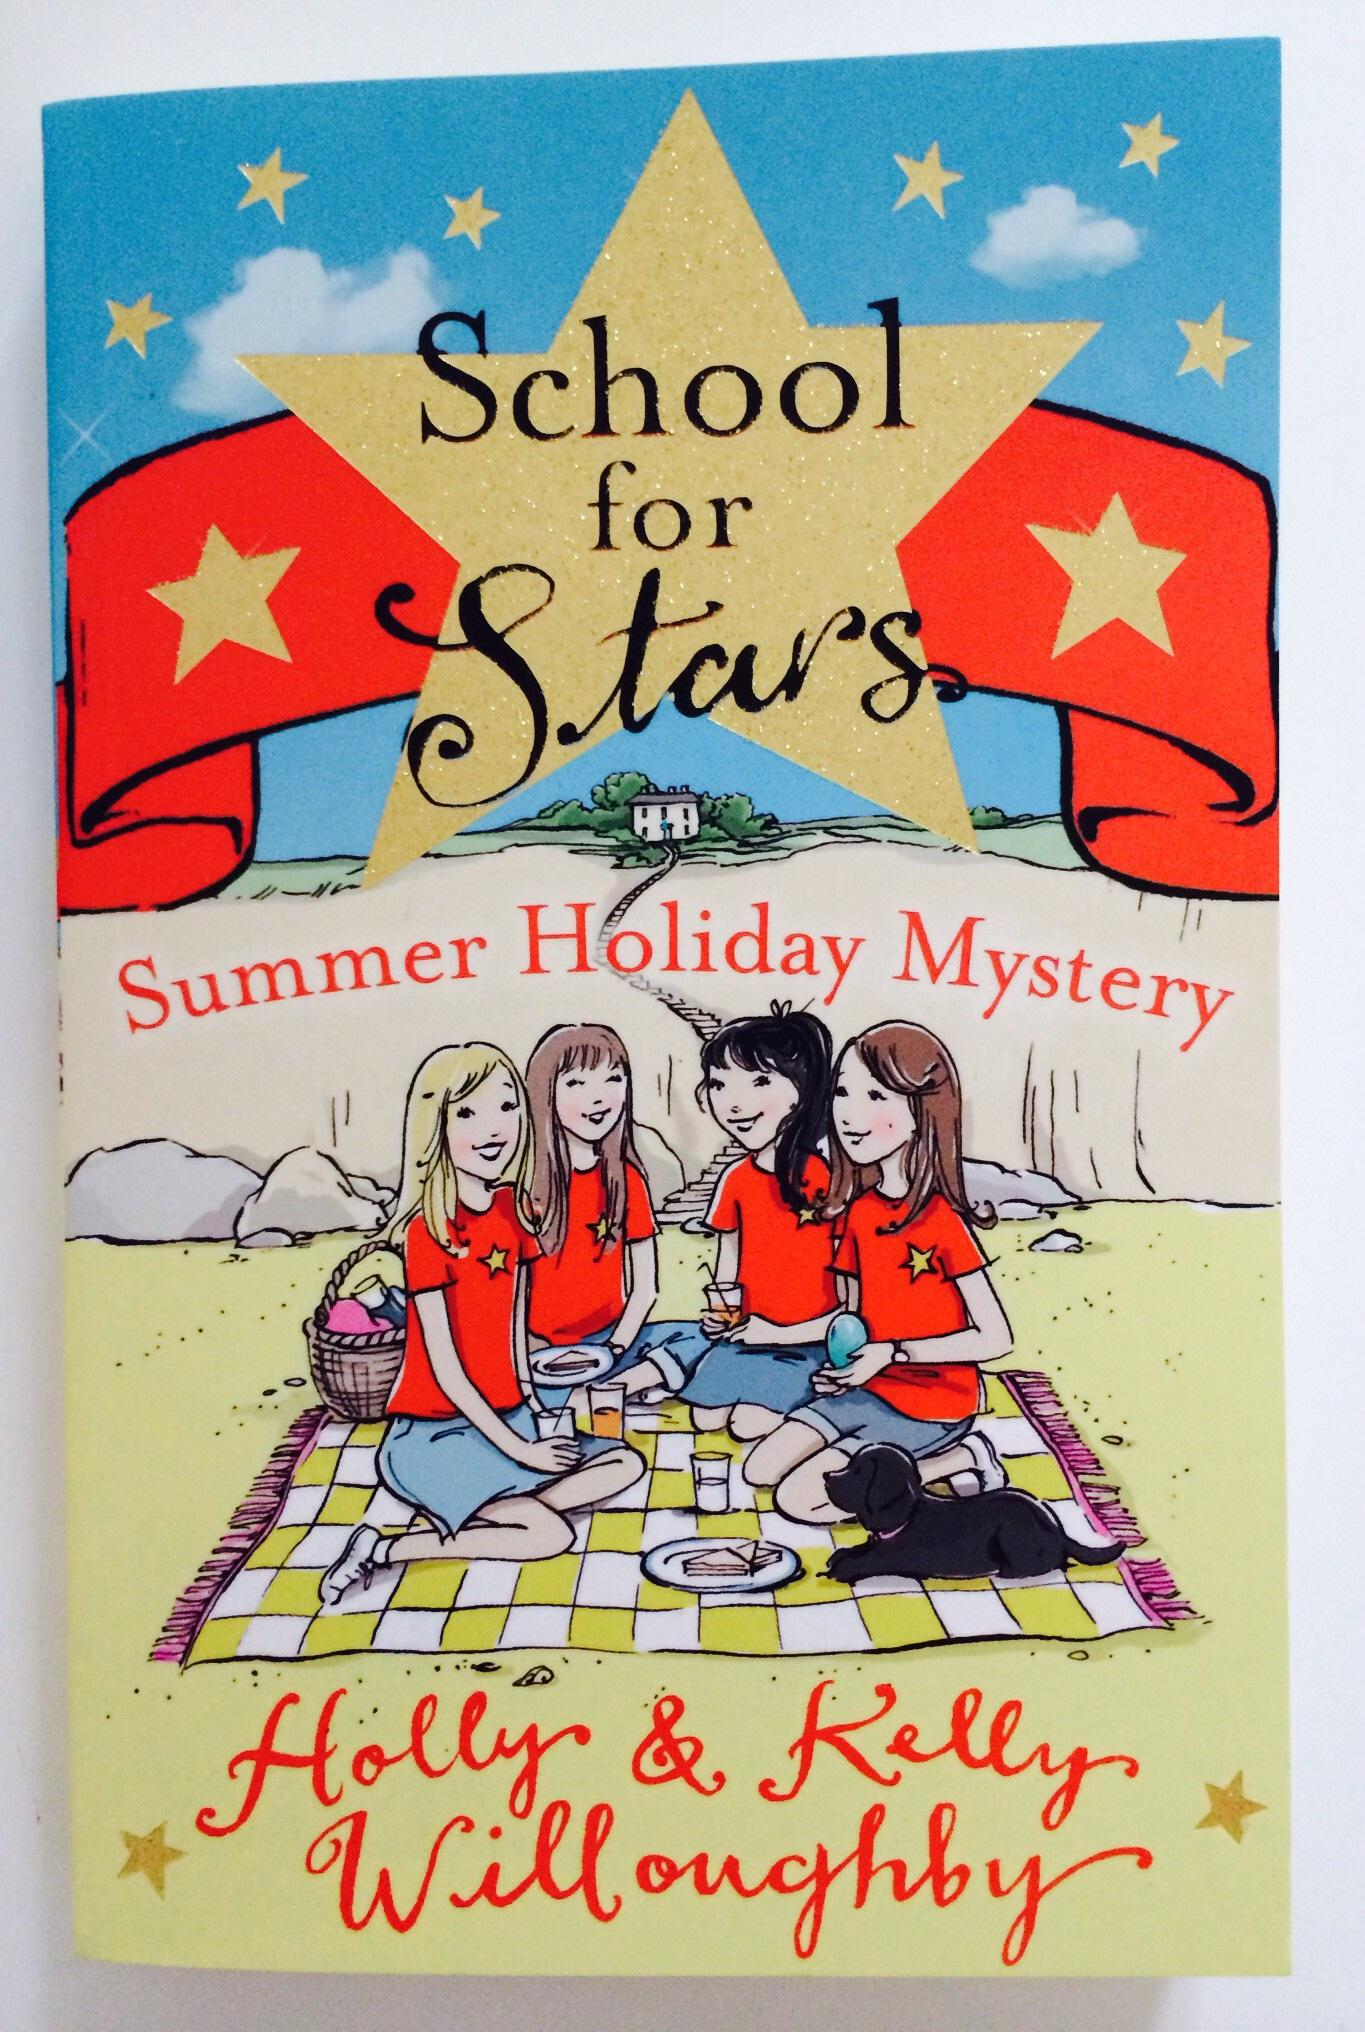 RT @LadyWilloughby: Look what just landed on the doormat @hollywills!  Our very own Summer Holiday Mystery xxx http://t.co/NSNFtGzs2n http:…